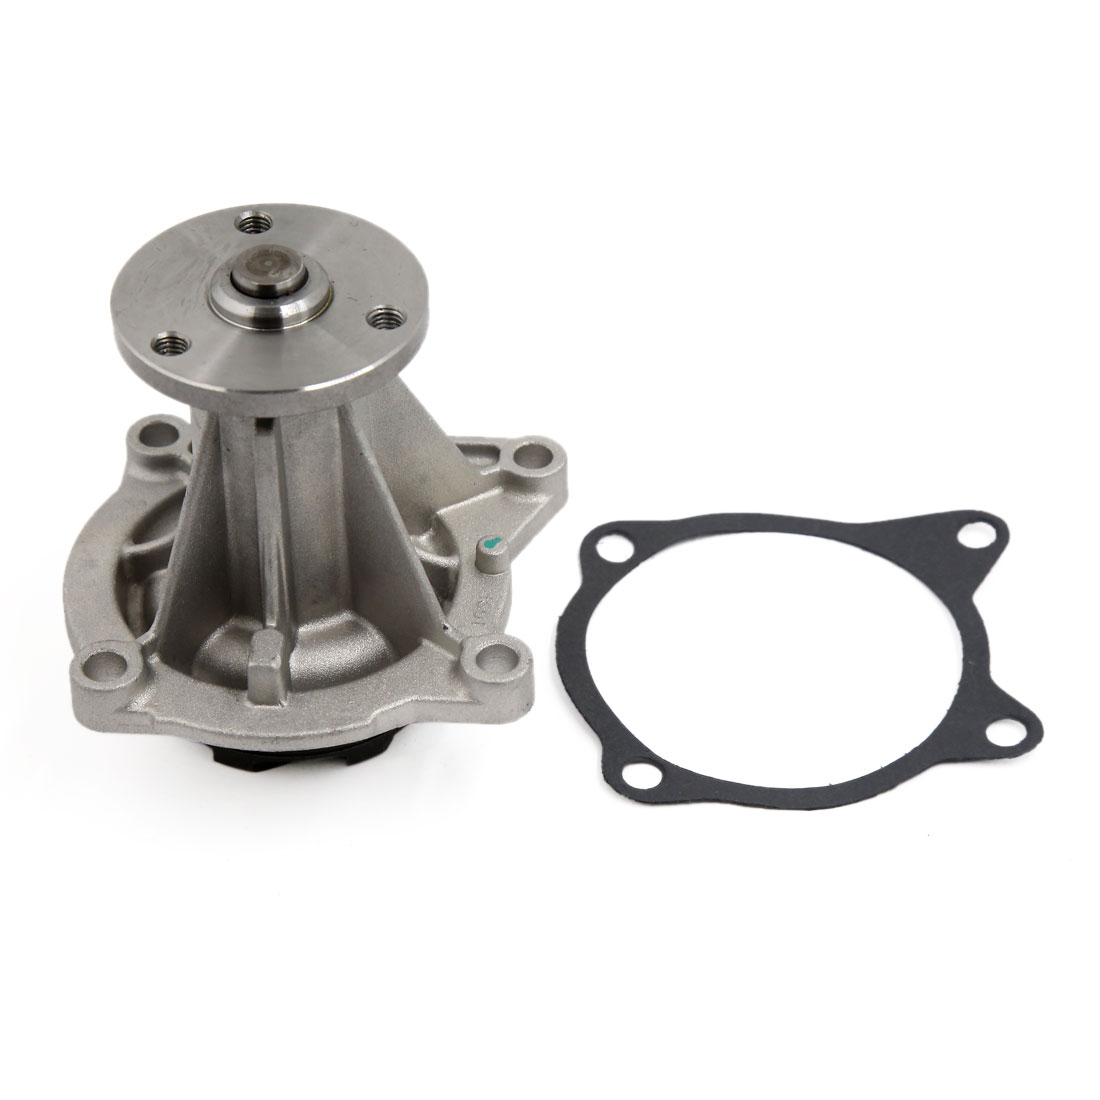 Replacement Water Pump 10048968 FOR Chevrolet Cavalier